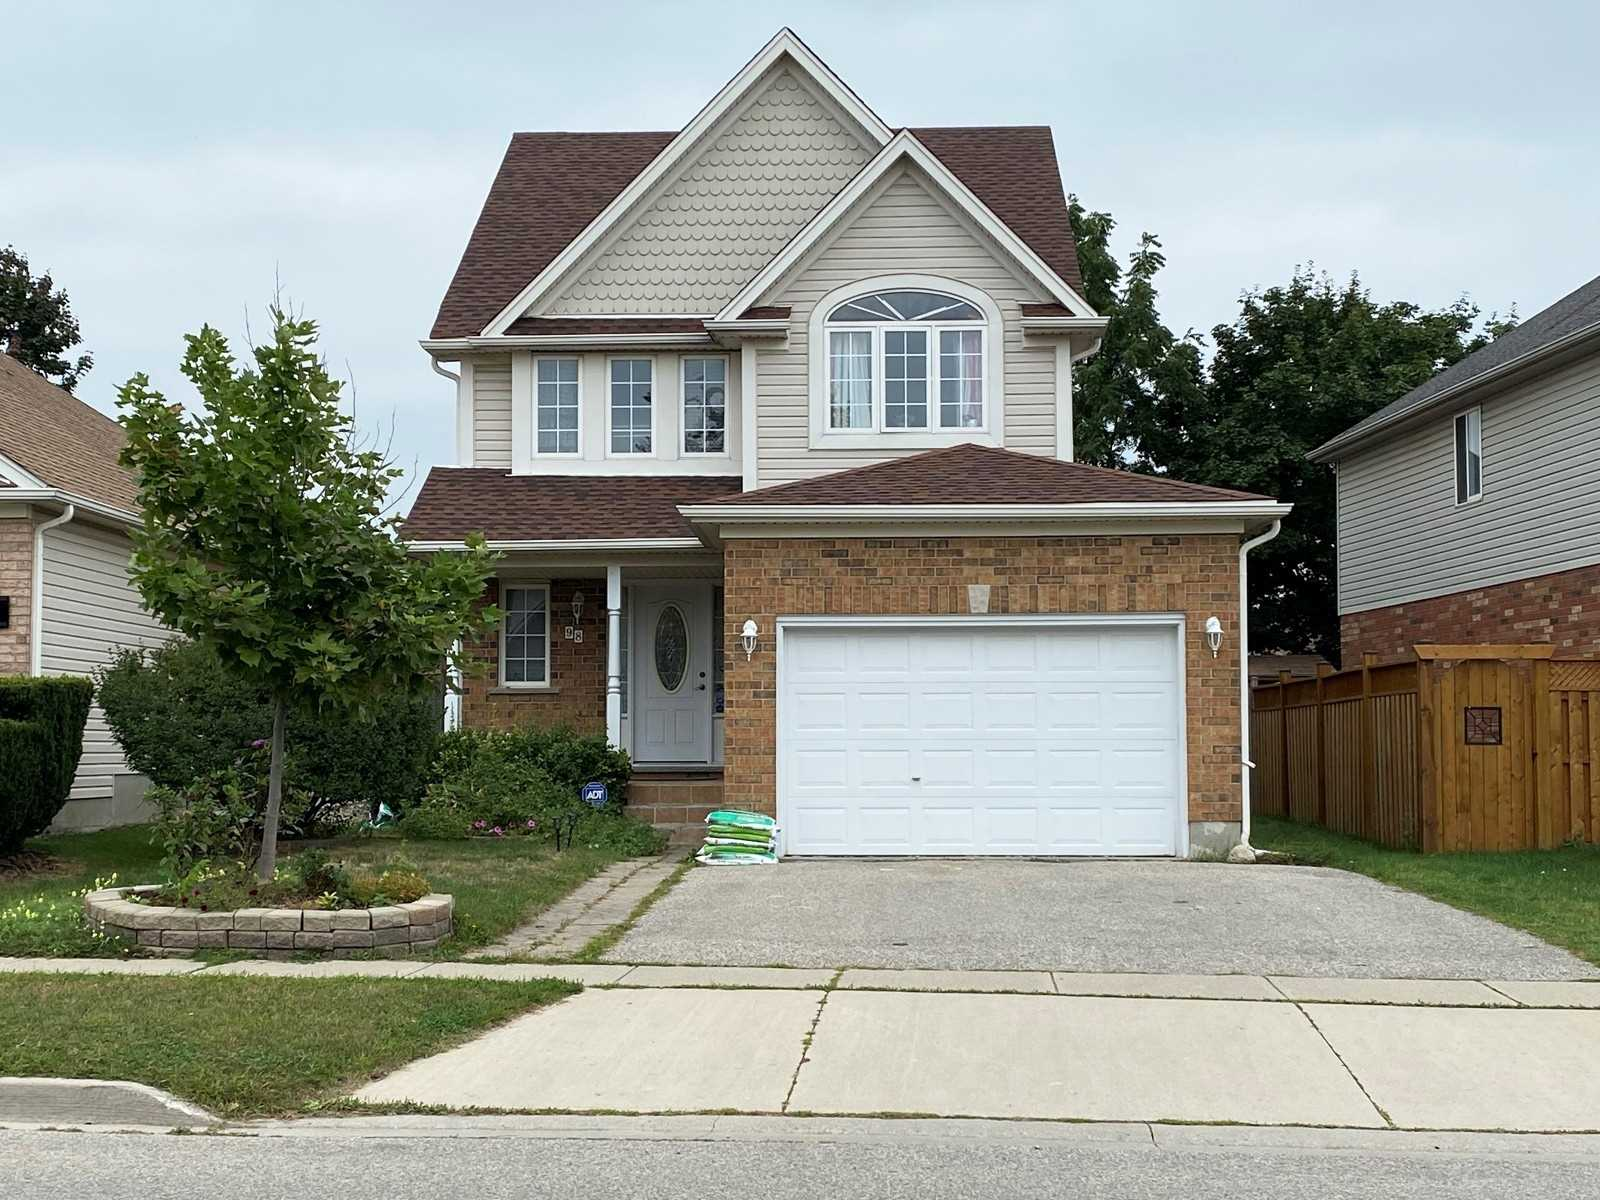 Detached house For Lease In Cambridge - 98 Adler Dr, Cambridge, Ontario, Canada N3C 4B7 , 3 Bedrooms Bedrooms, ,3 BathroomsBathrooms,Detached,For Lease,Adler